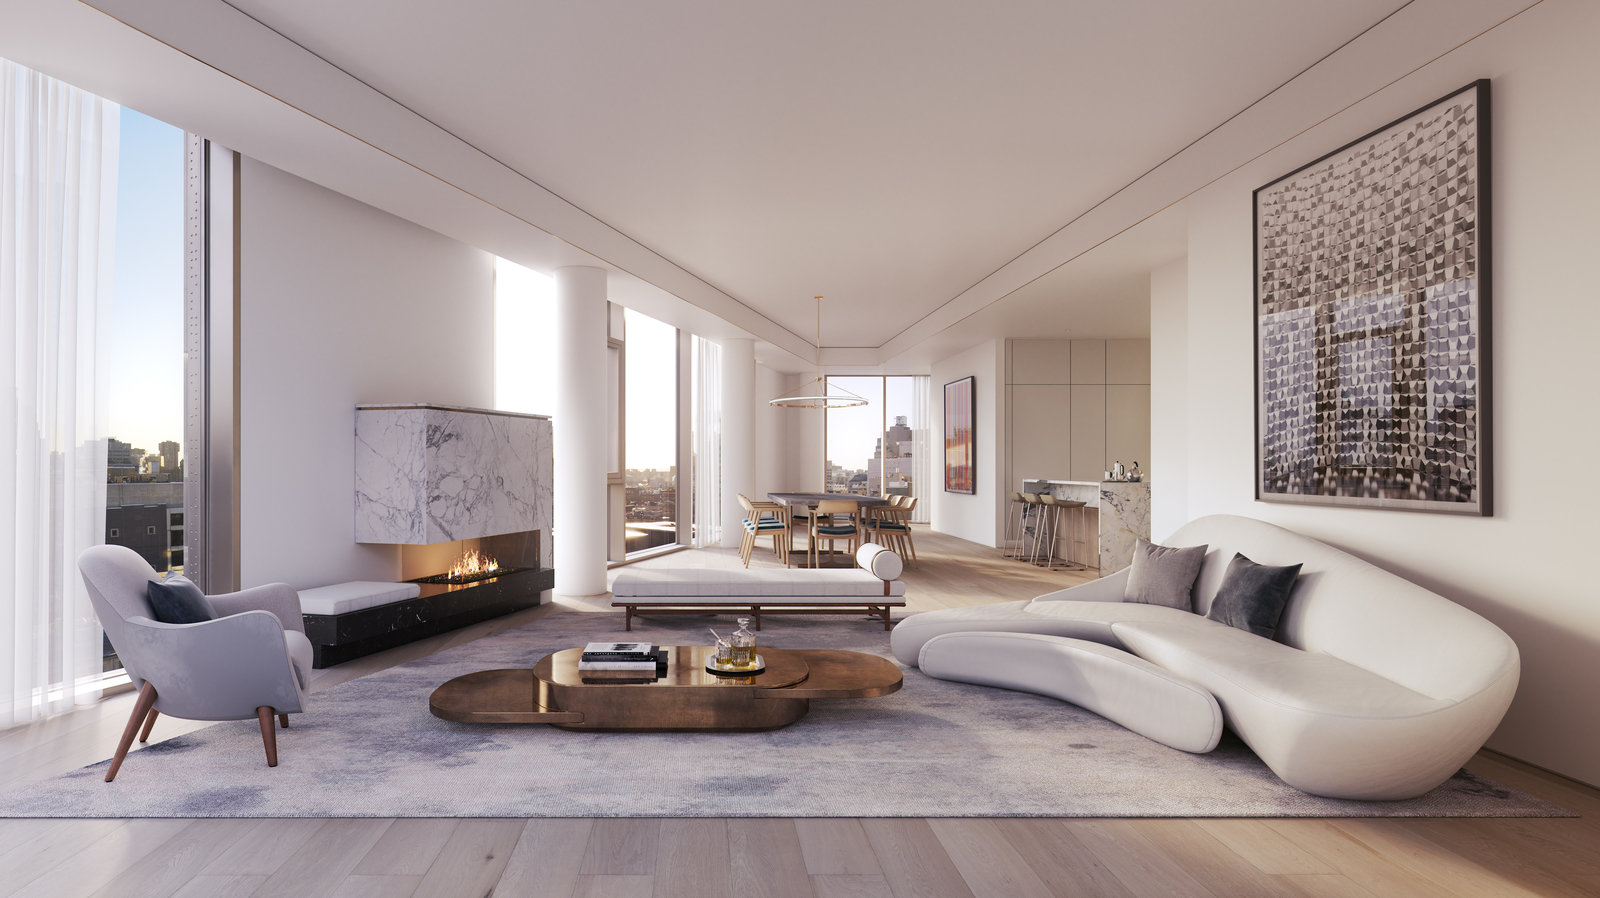 Rendering of the living room at 80 east 10th street with MEP-FP engineering services provided by 2L Engineering